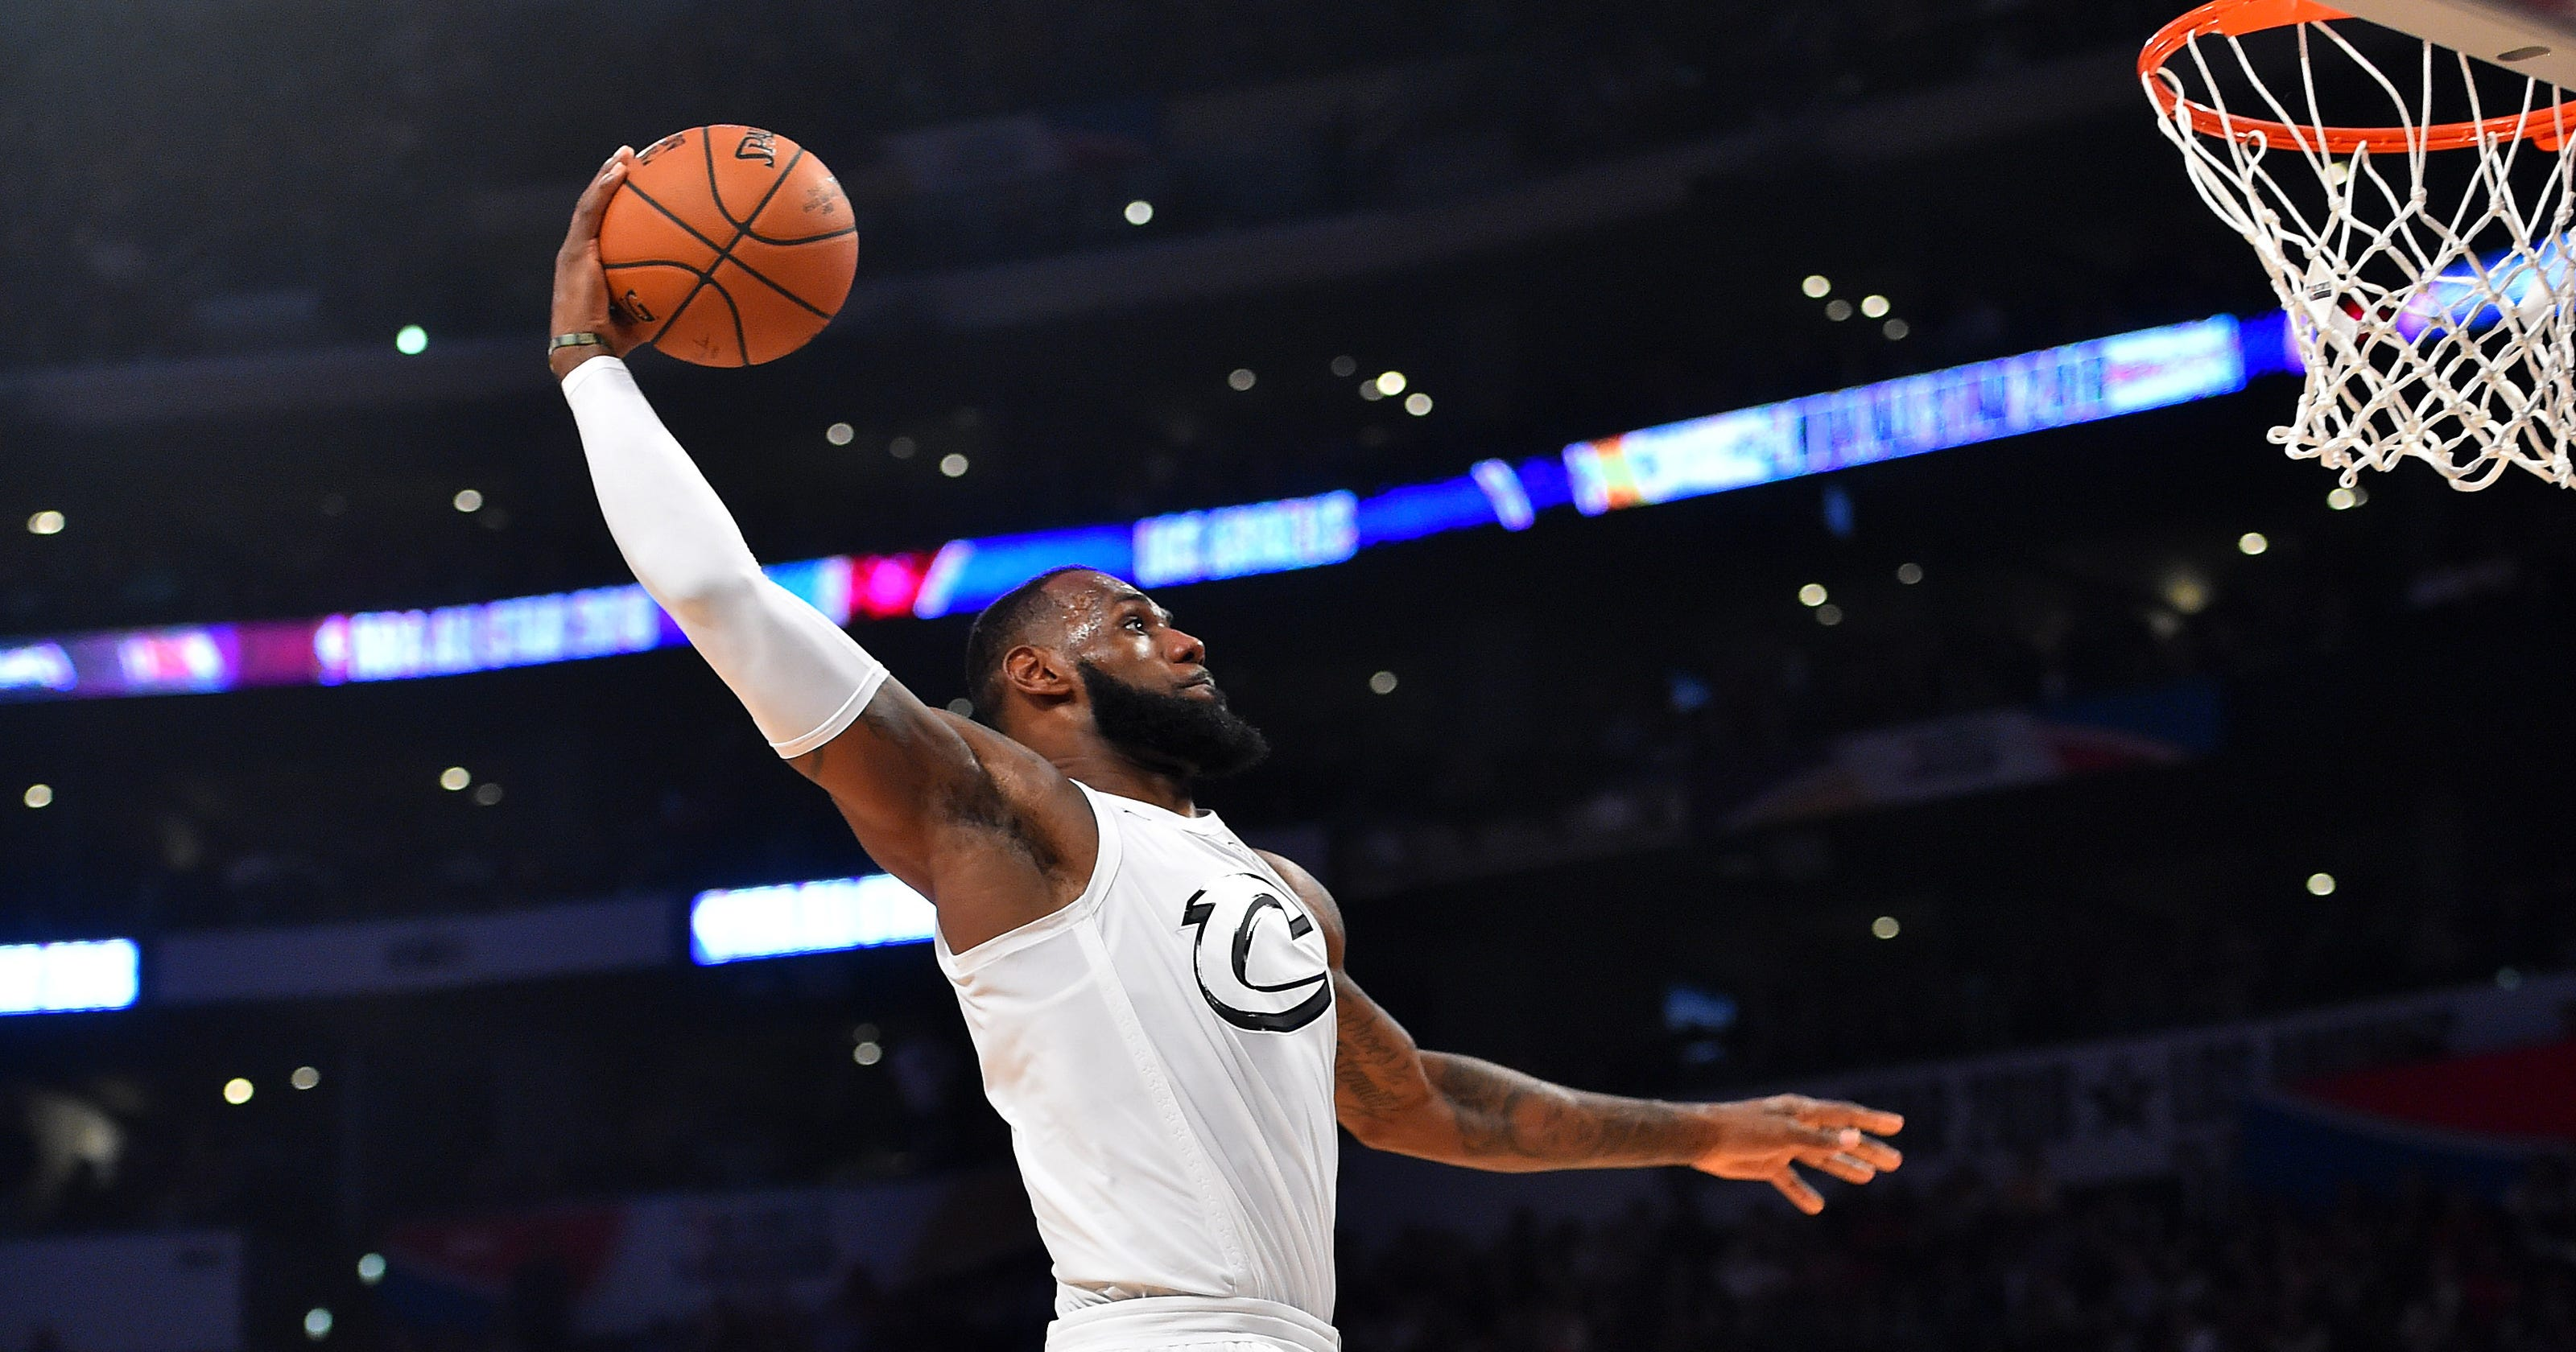 a26ad4419b32 NBA All-Star Game  LeBron James wins third MVP of career